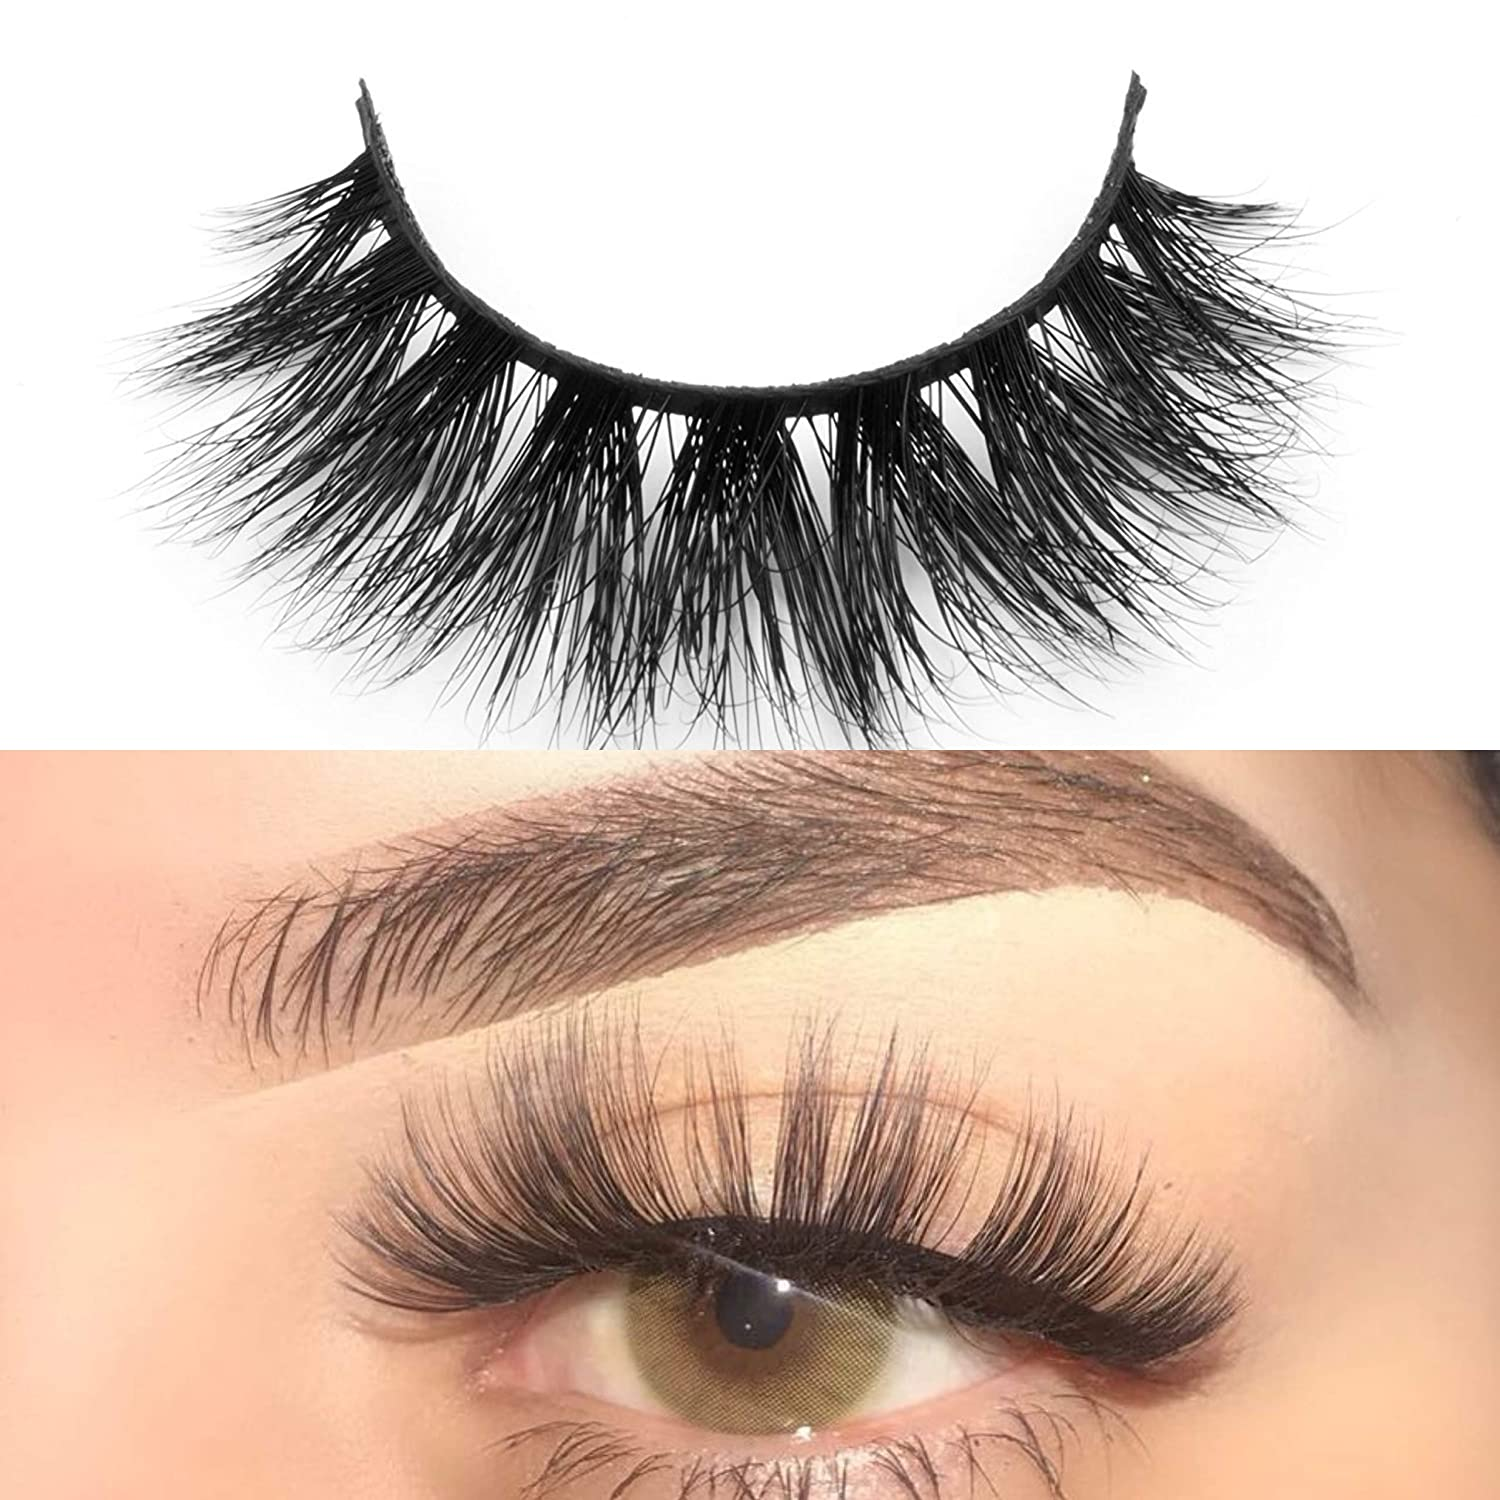 4cc6013b015 Amazon.com : 3D Mink Lashes 100% Handmade Natural Long Siberian Real Mink  Fur lashes Strip Black False Eyelashes for Makeup 1 Pair by EYEMEI : Beauty